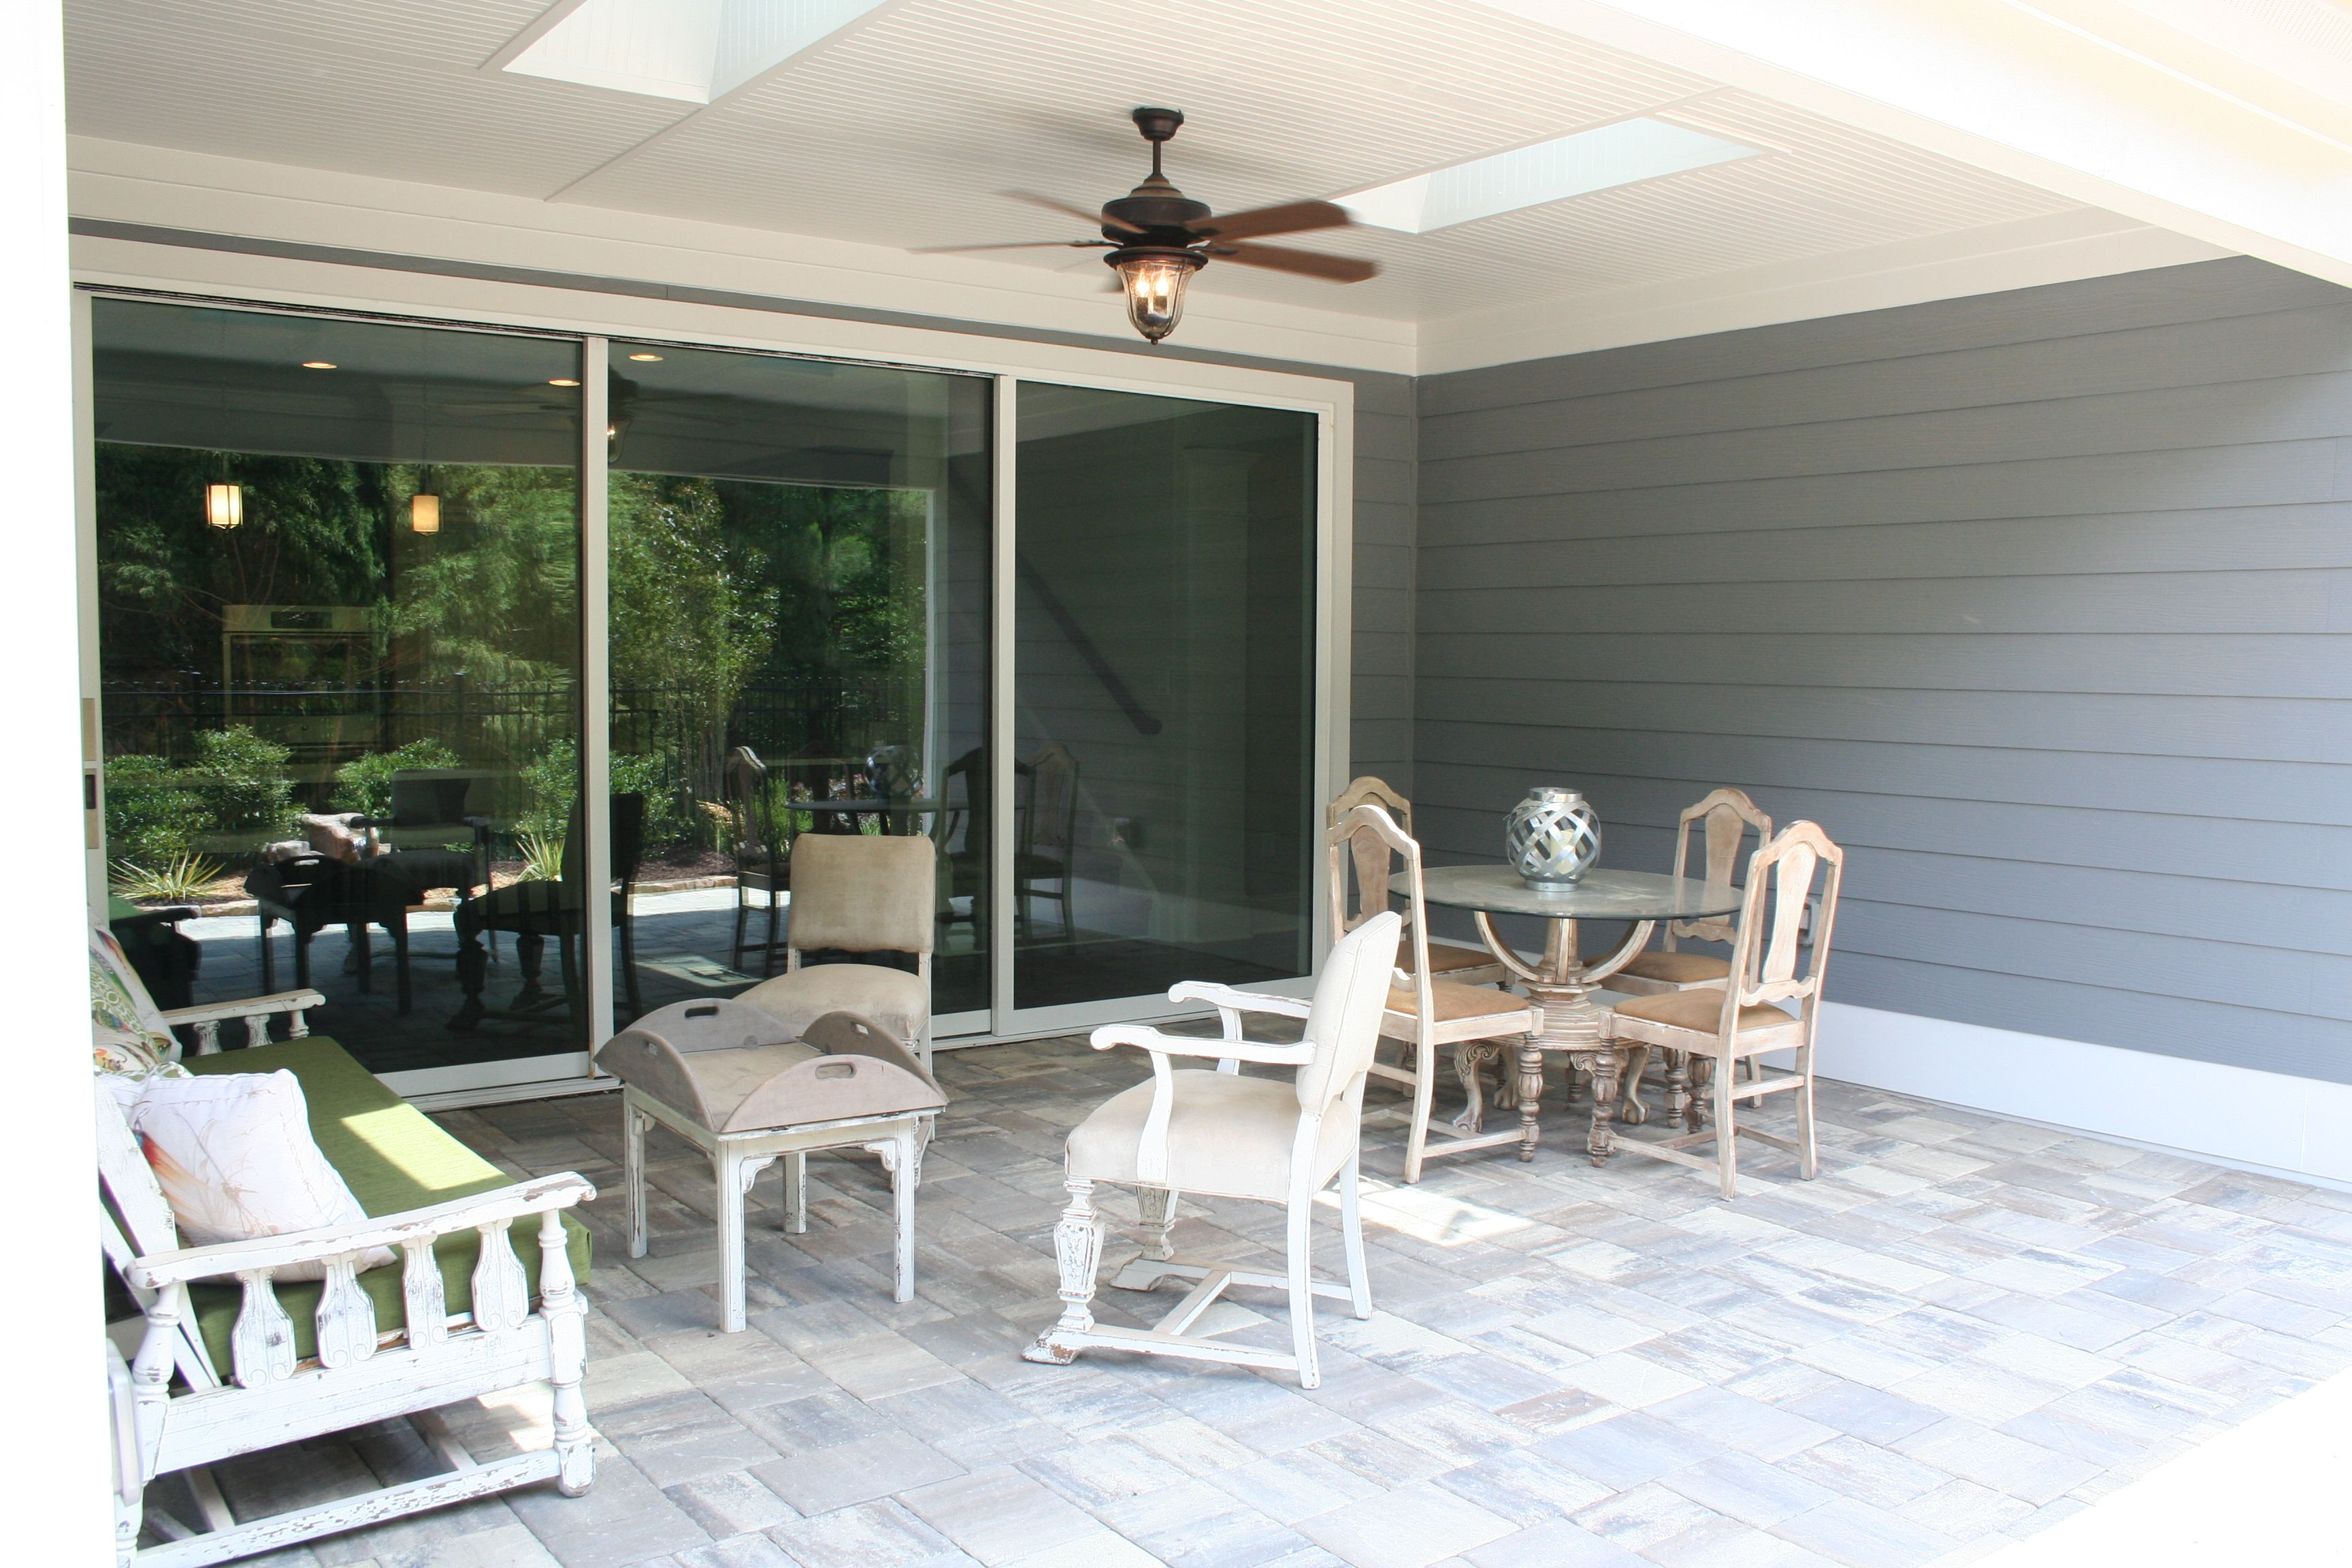 Patio Cover With Skylights And Ceiling Fans - Patio Covers